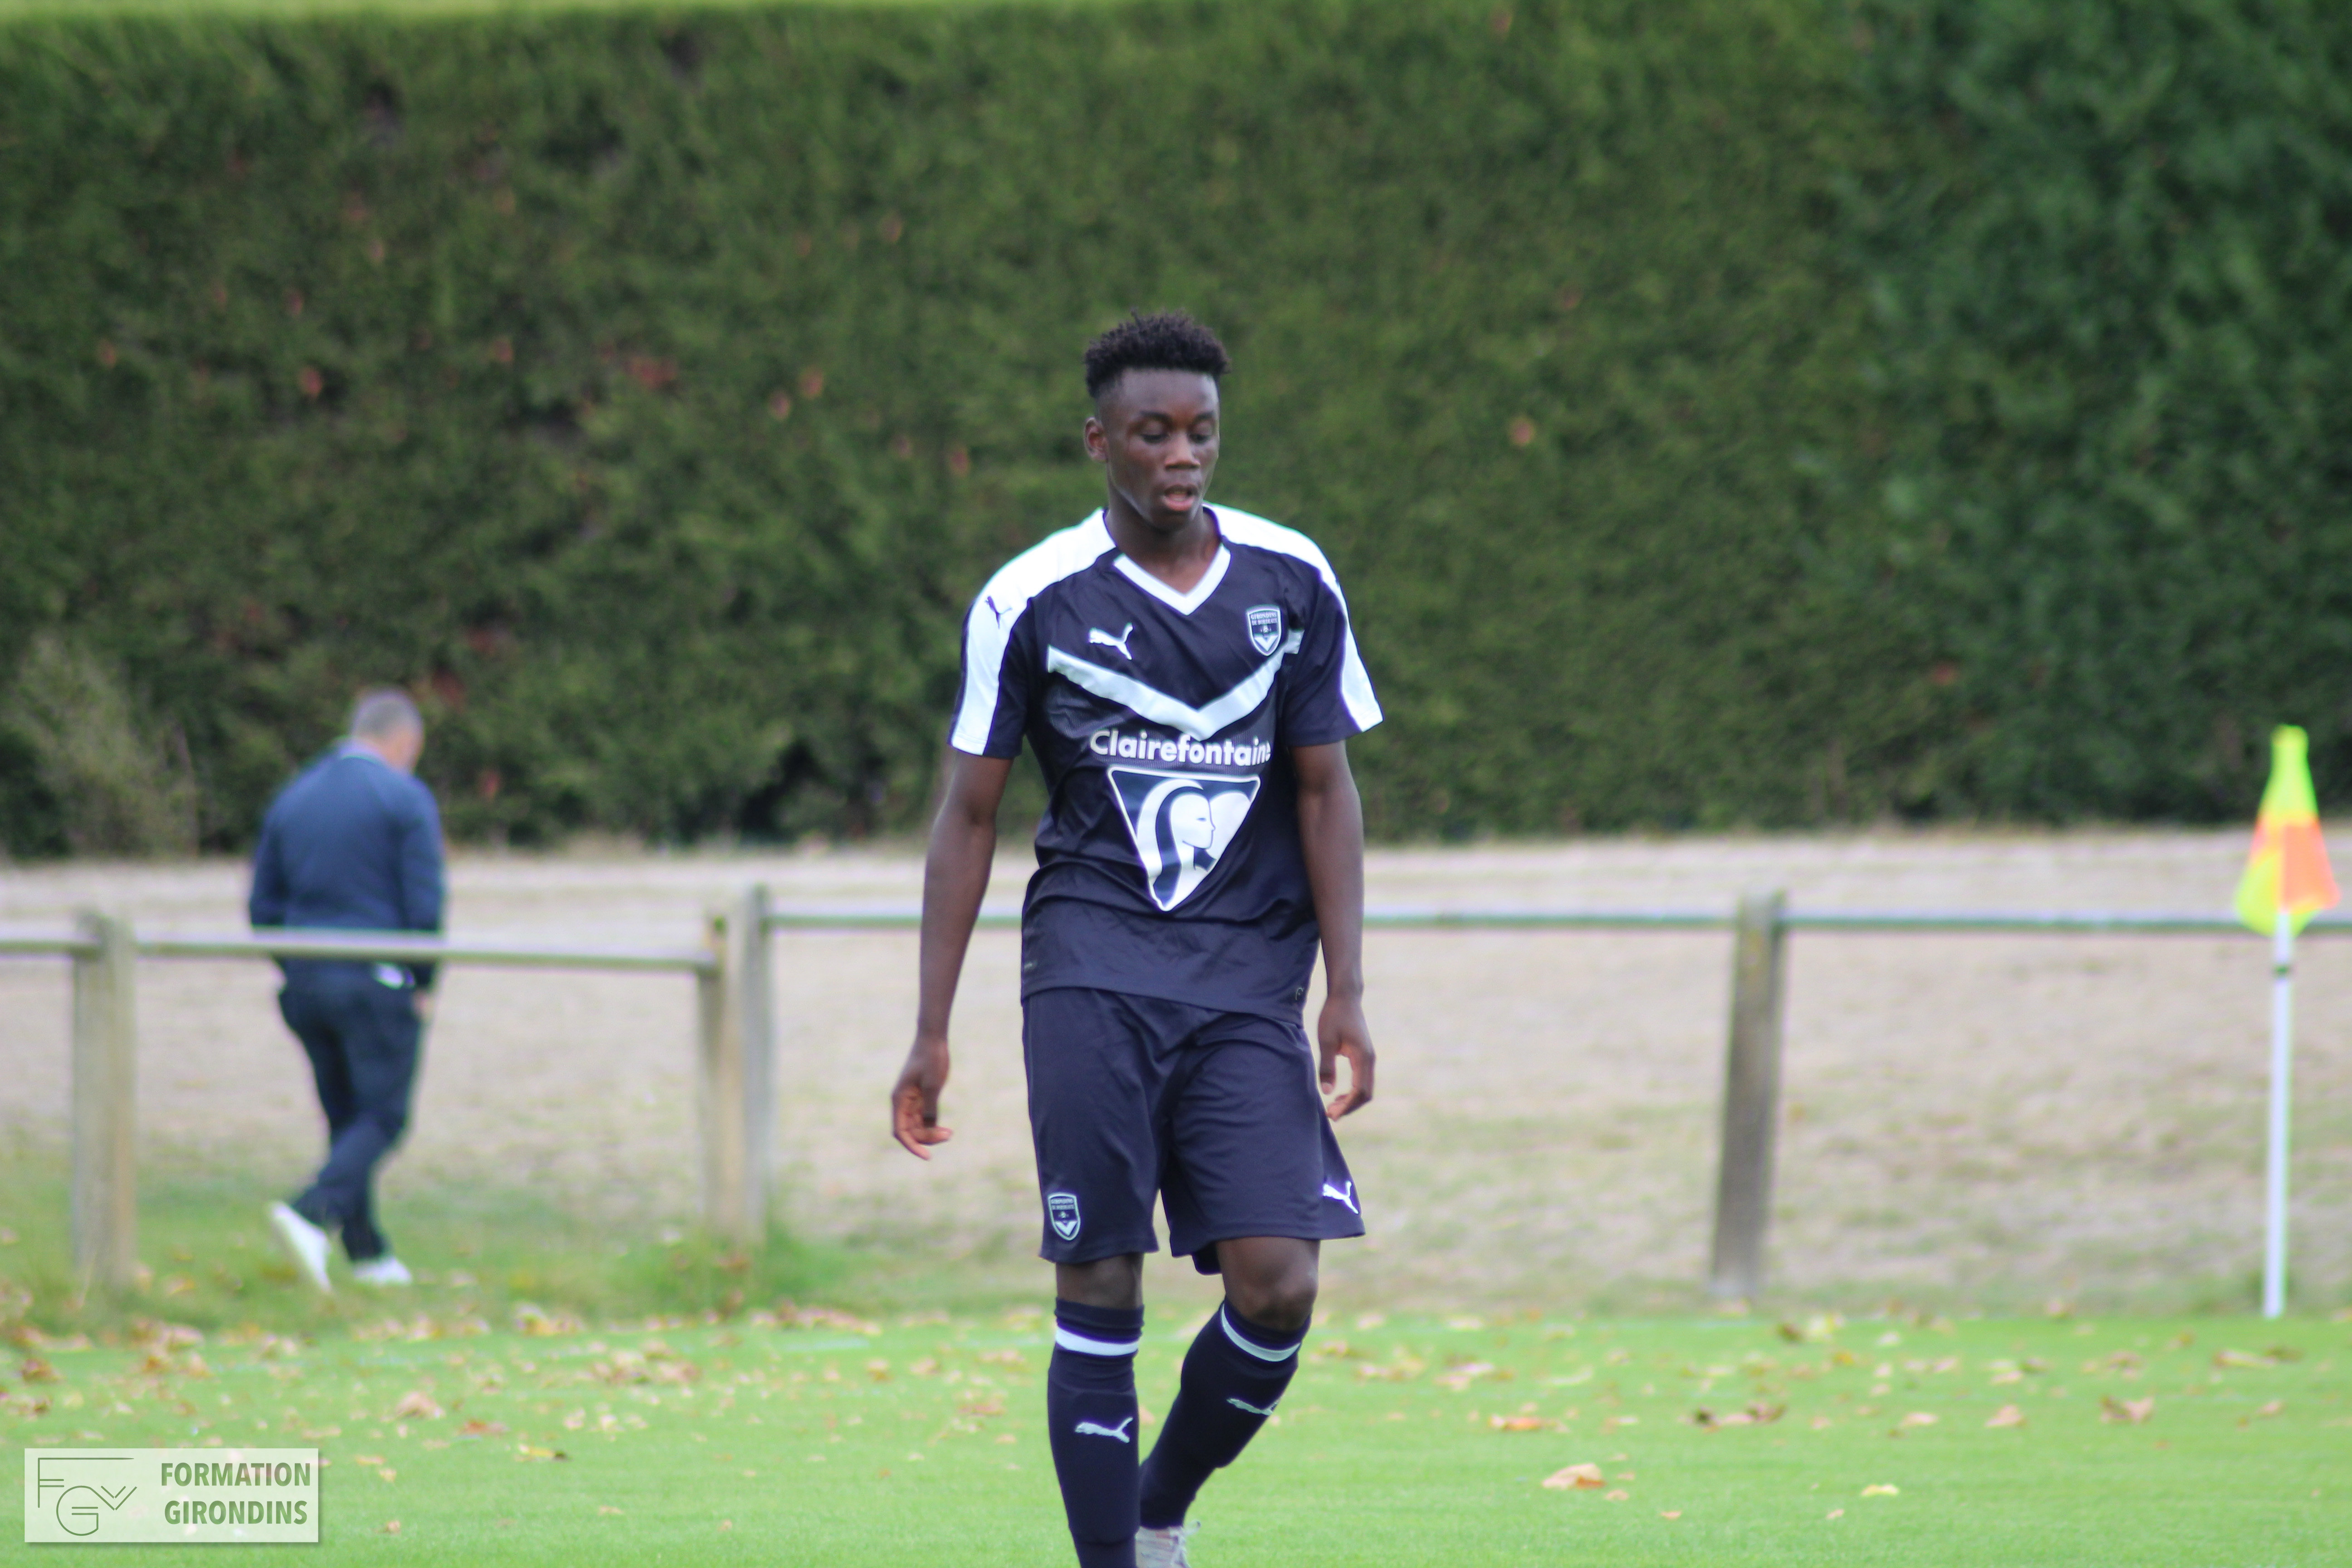 Cfa Girondins : Large victoire contre Langon - Formation Girondins